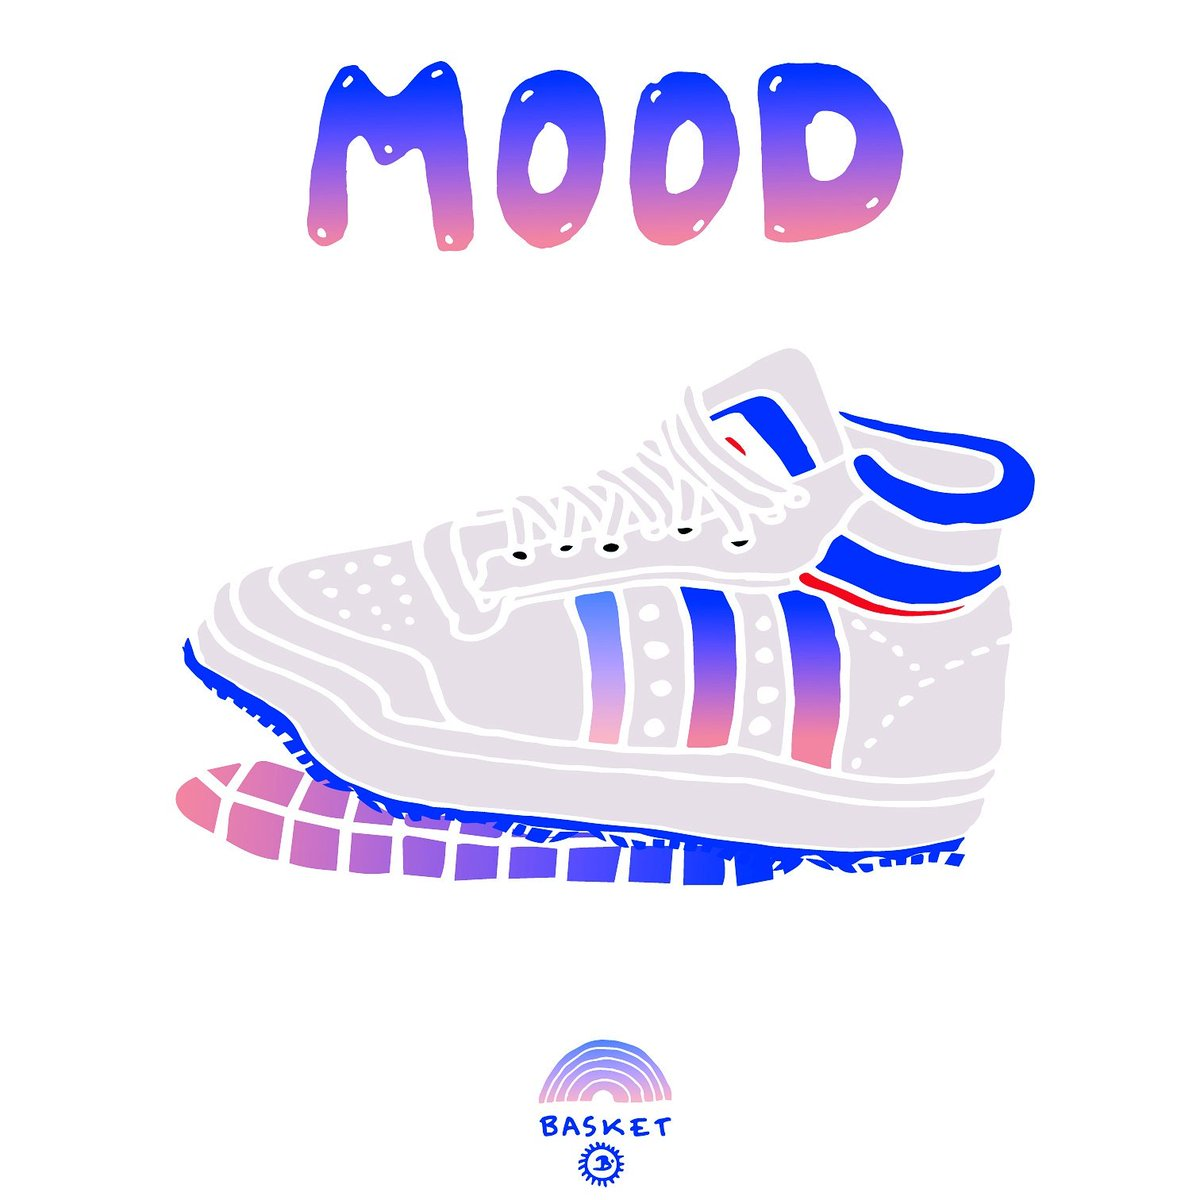 Basket #mood #illustration #sport #run #running #courir #rainbow #urban #summer #boyfriend #basket #adidas #スポーツ<br>http://pic.twitter.com/Nz8tXZymyt